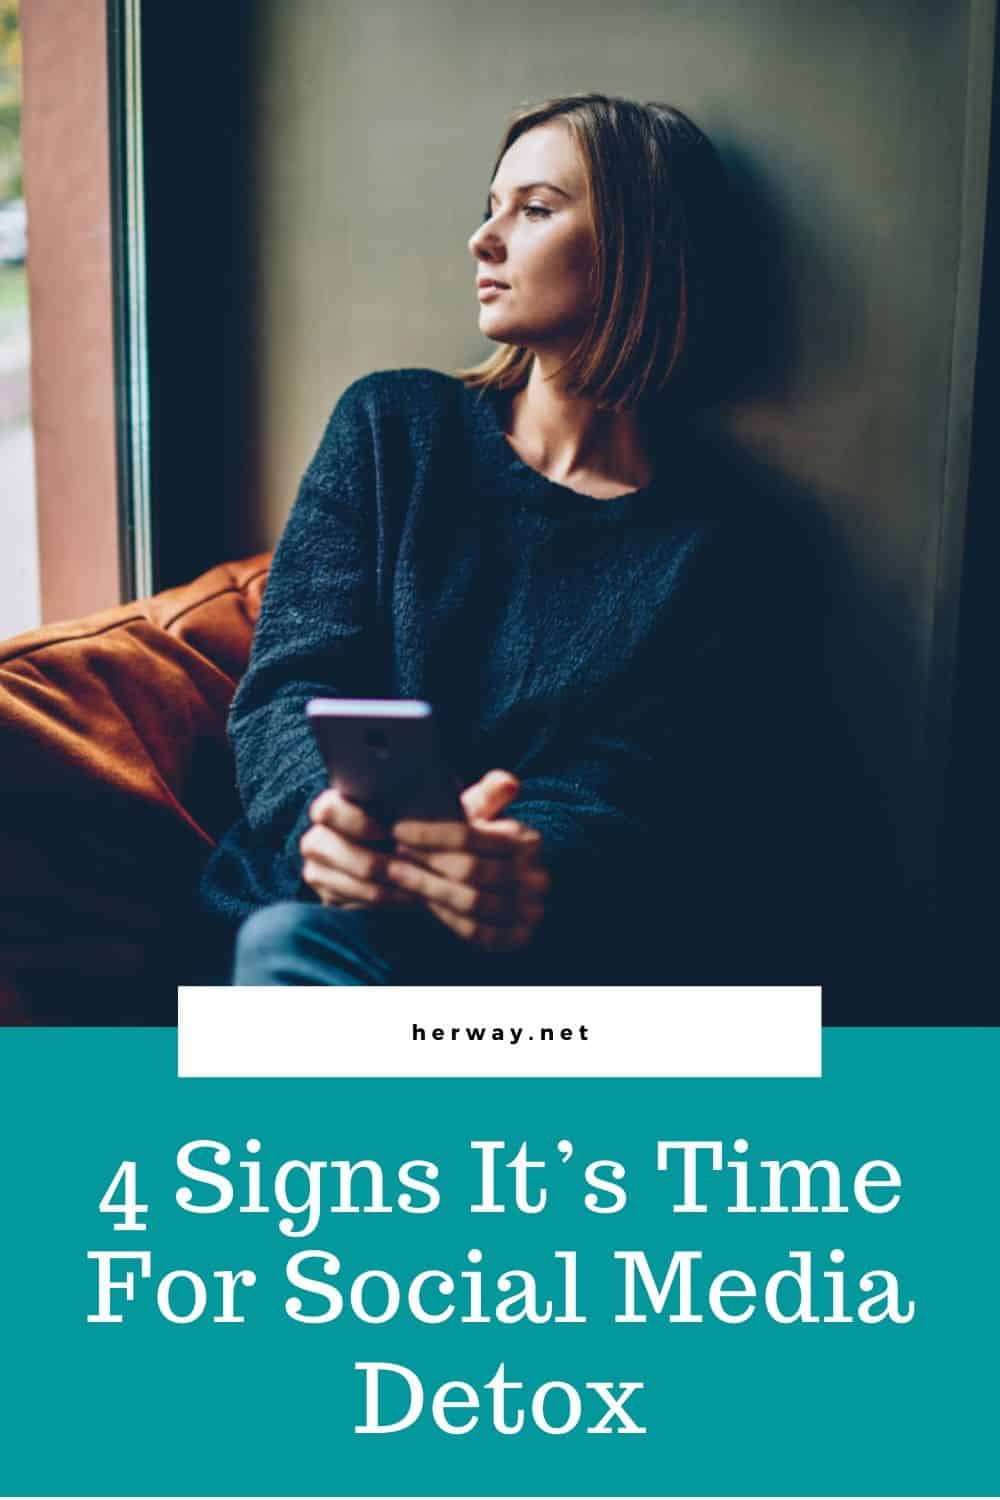 4 Signs It's Time For Social Media Detox